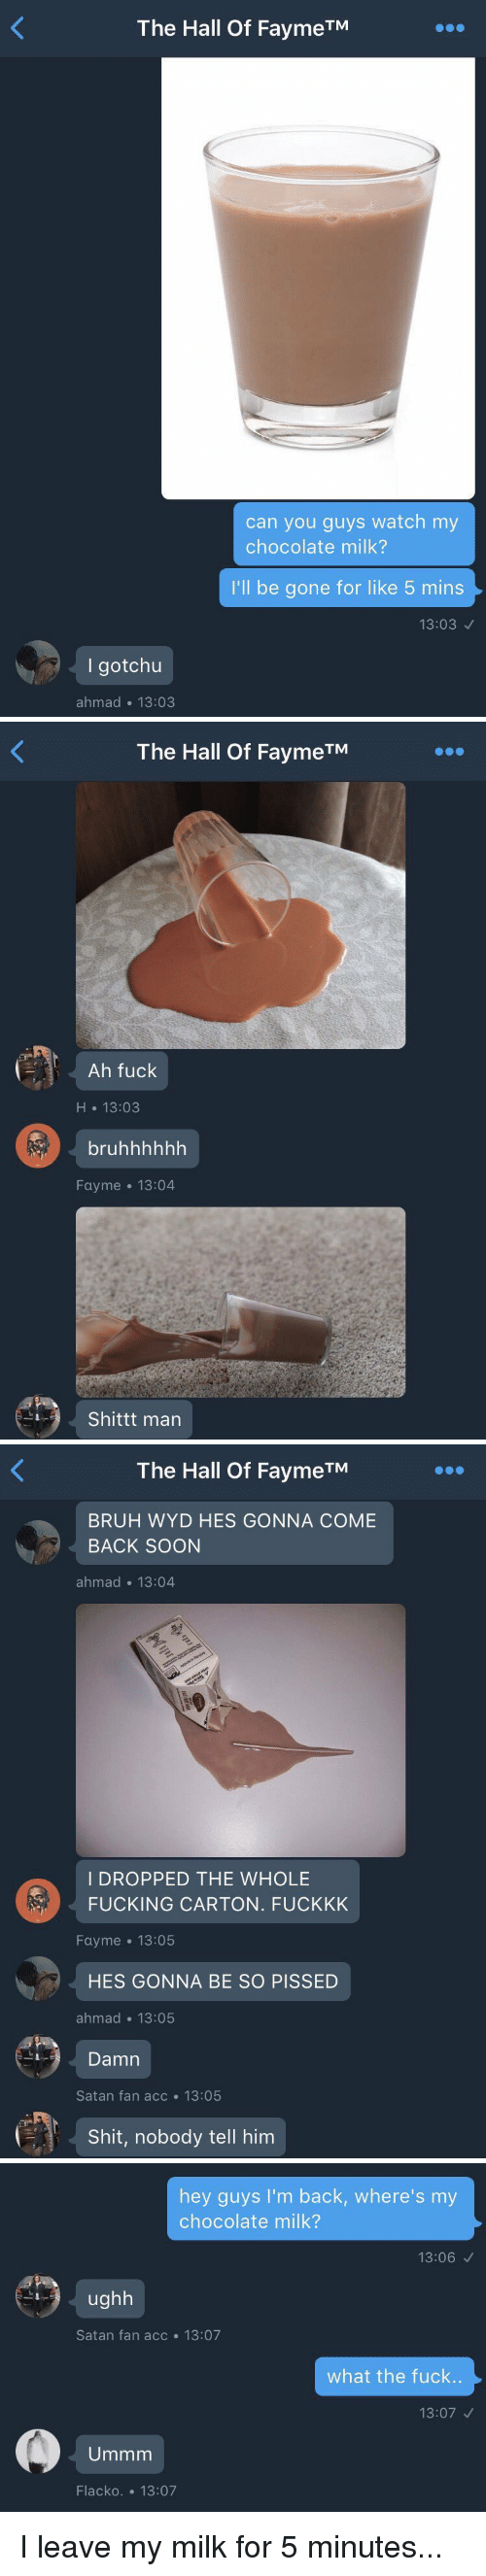 Memes, Wyd, and Satan: The Hall of FaymeTM  can you guys watch my  chocolate milk?  I'll be gone for like 5 mins  13:03  I got chu  ahmad 13:03   The Hall of FaymeTM  Ah fuck  H 13:03  bruhhhhhh  Fayme 13:04  Shittt man   The Hall of FaymeTM  BRUH WYD HES GONNA COME  BACK SOON  ahmad 13:04  I DROPPED THE WHOLE  FUCKING CARTON. FUCKKK  Fayme 13:05  HES GONNA BE SO PISSED  ahmad 13:05  Damn  Satan fan acc 13:05  Shit, nobody tell him   hey guys I'm back, where's my  chocolate milk?  13:06  ughh  Satan fan acc 13:07  what the fuck.  13:07  Ummm  Flacko. 13:07 I leave my milk for 5 minutes...